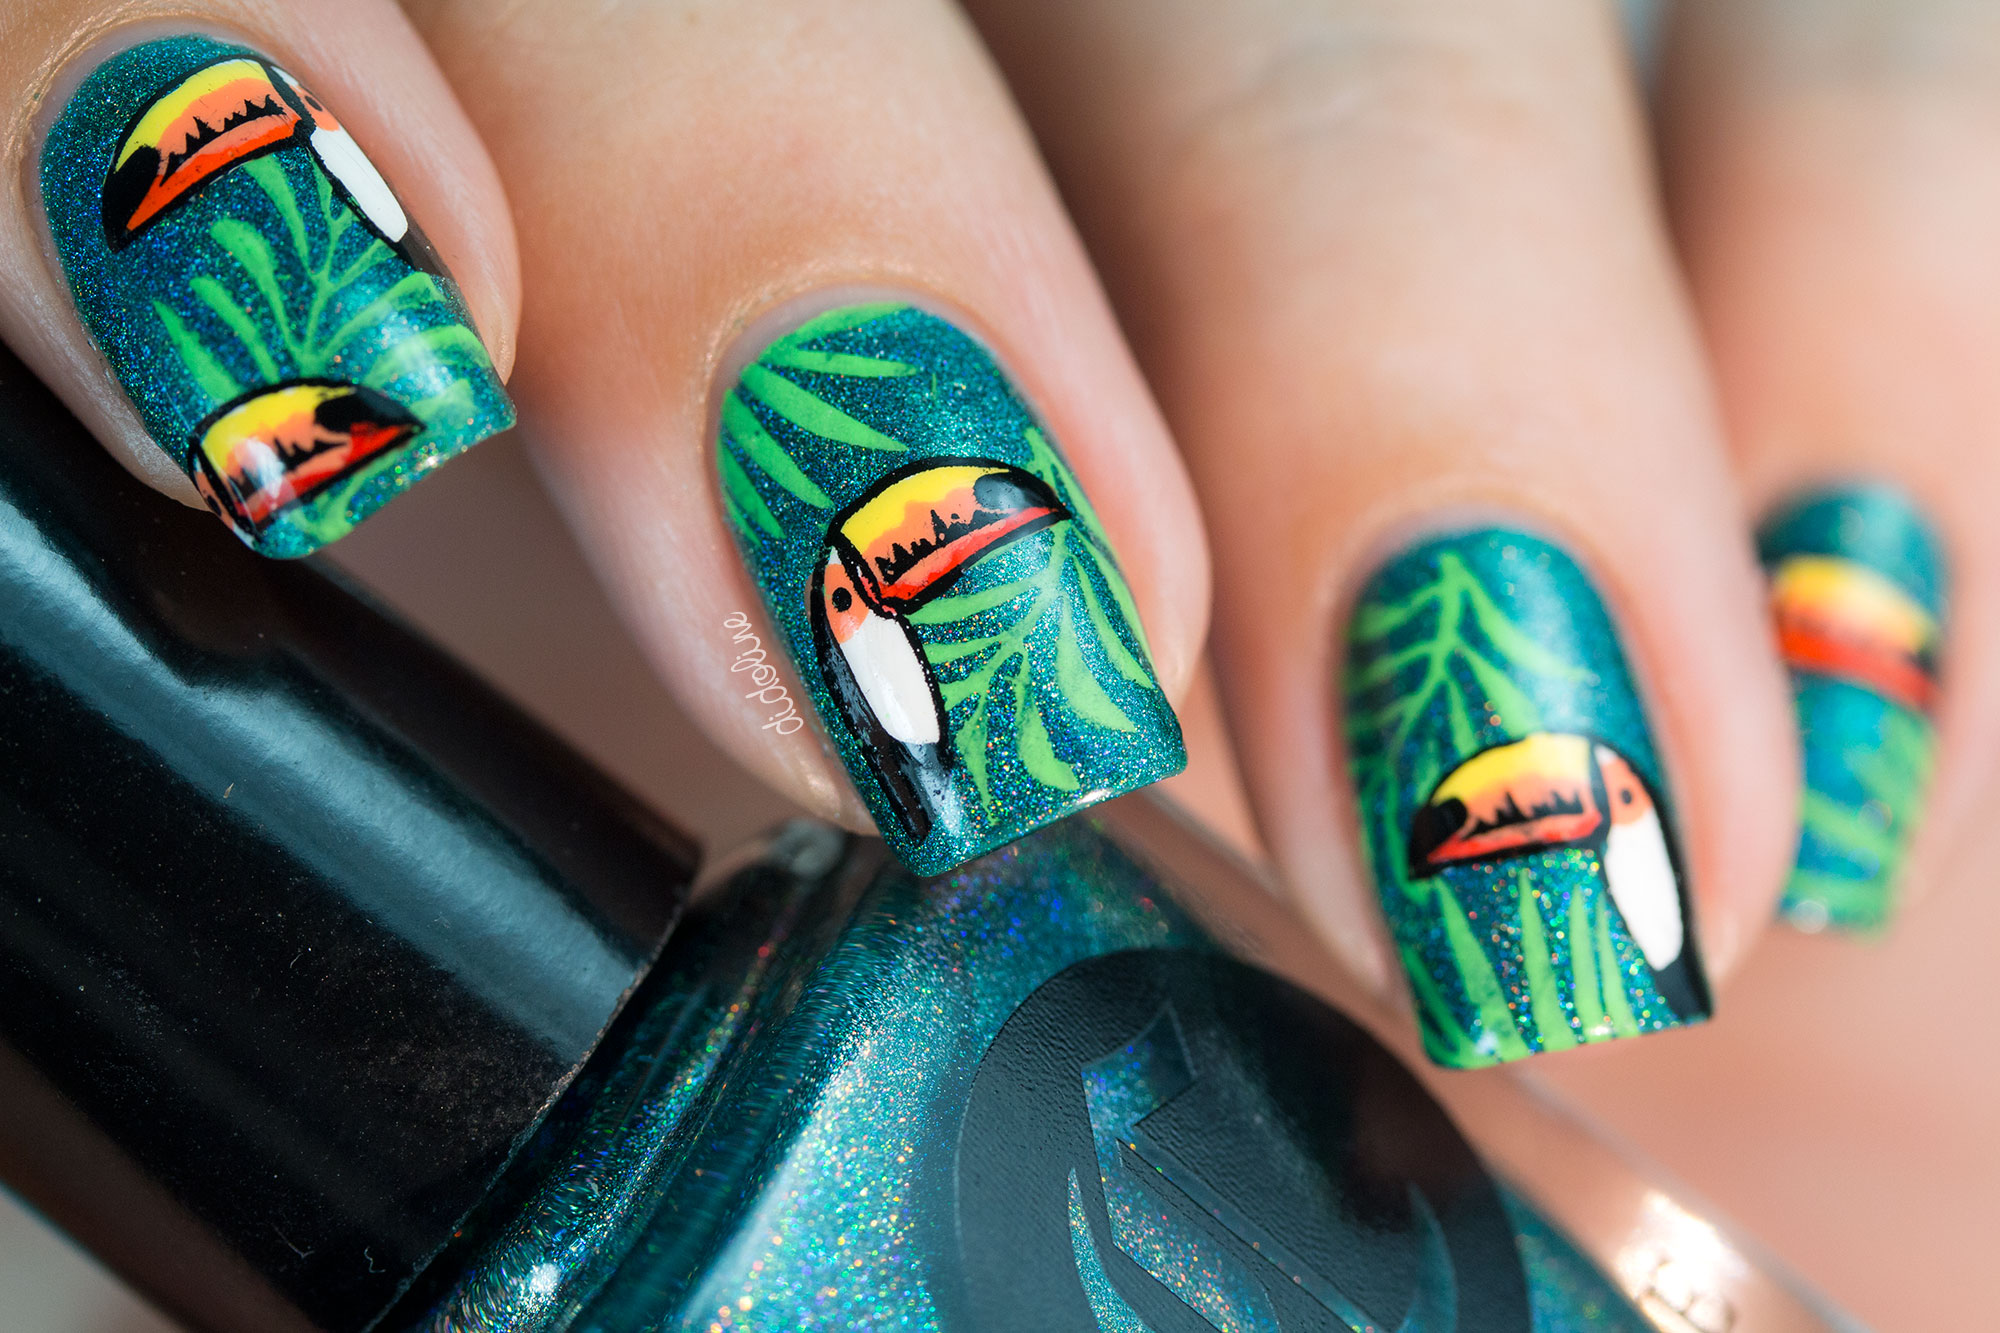 Hawaii Nails And Spa Prices